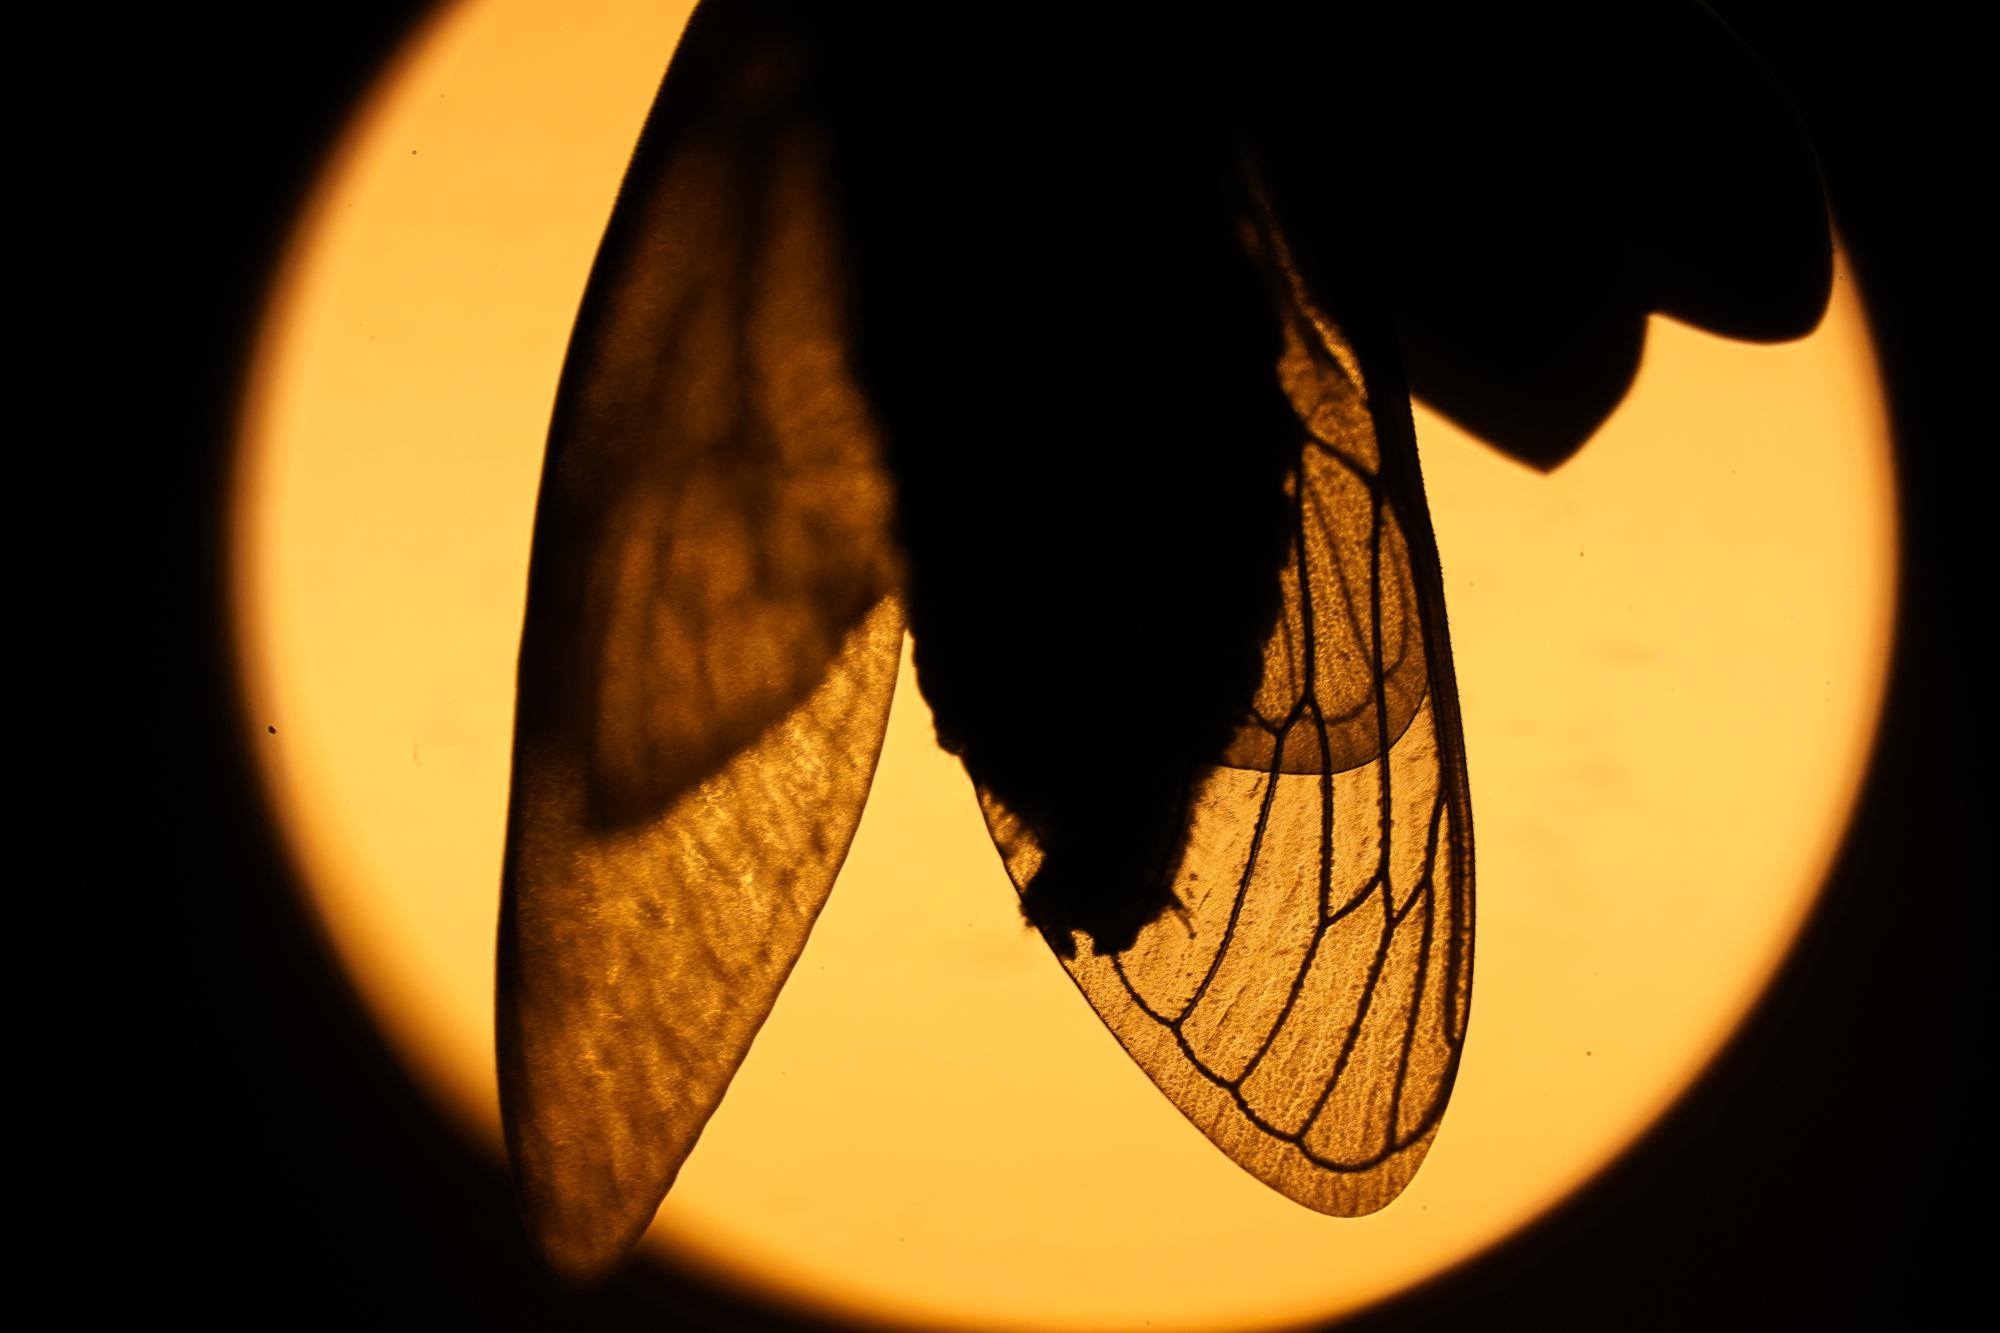 The wings of an adult cicada are silhouetted by a distant street light in Chevy Chase, Md., Thursday, May 13, 2021. (AP Photo/Carolyn Kaster)